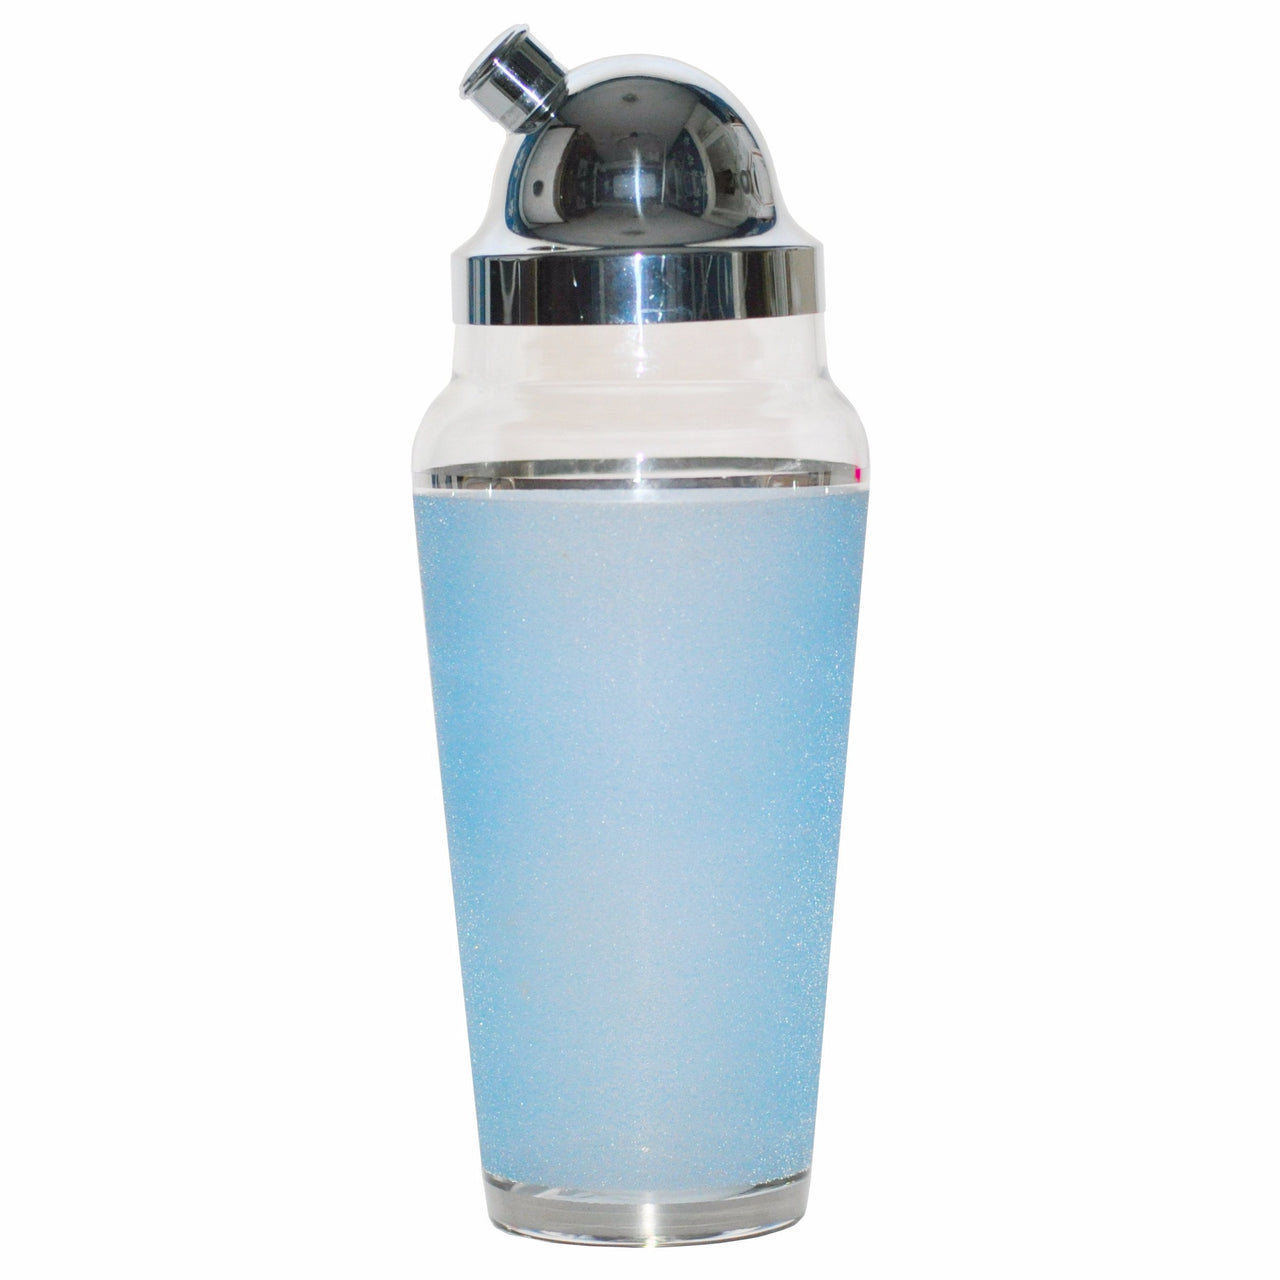 Light Blue Frosted Cocktail Shaker, The Hour Shop Vintage Barware